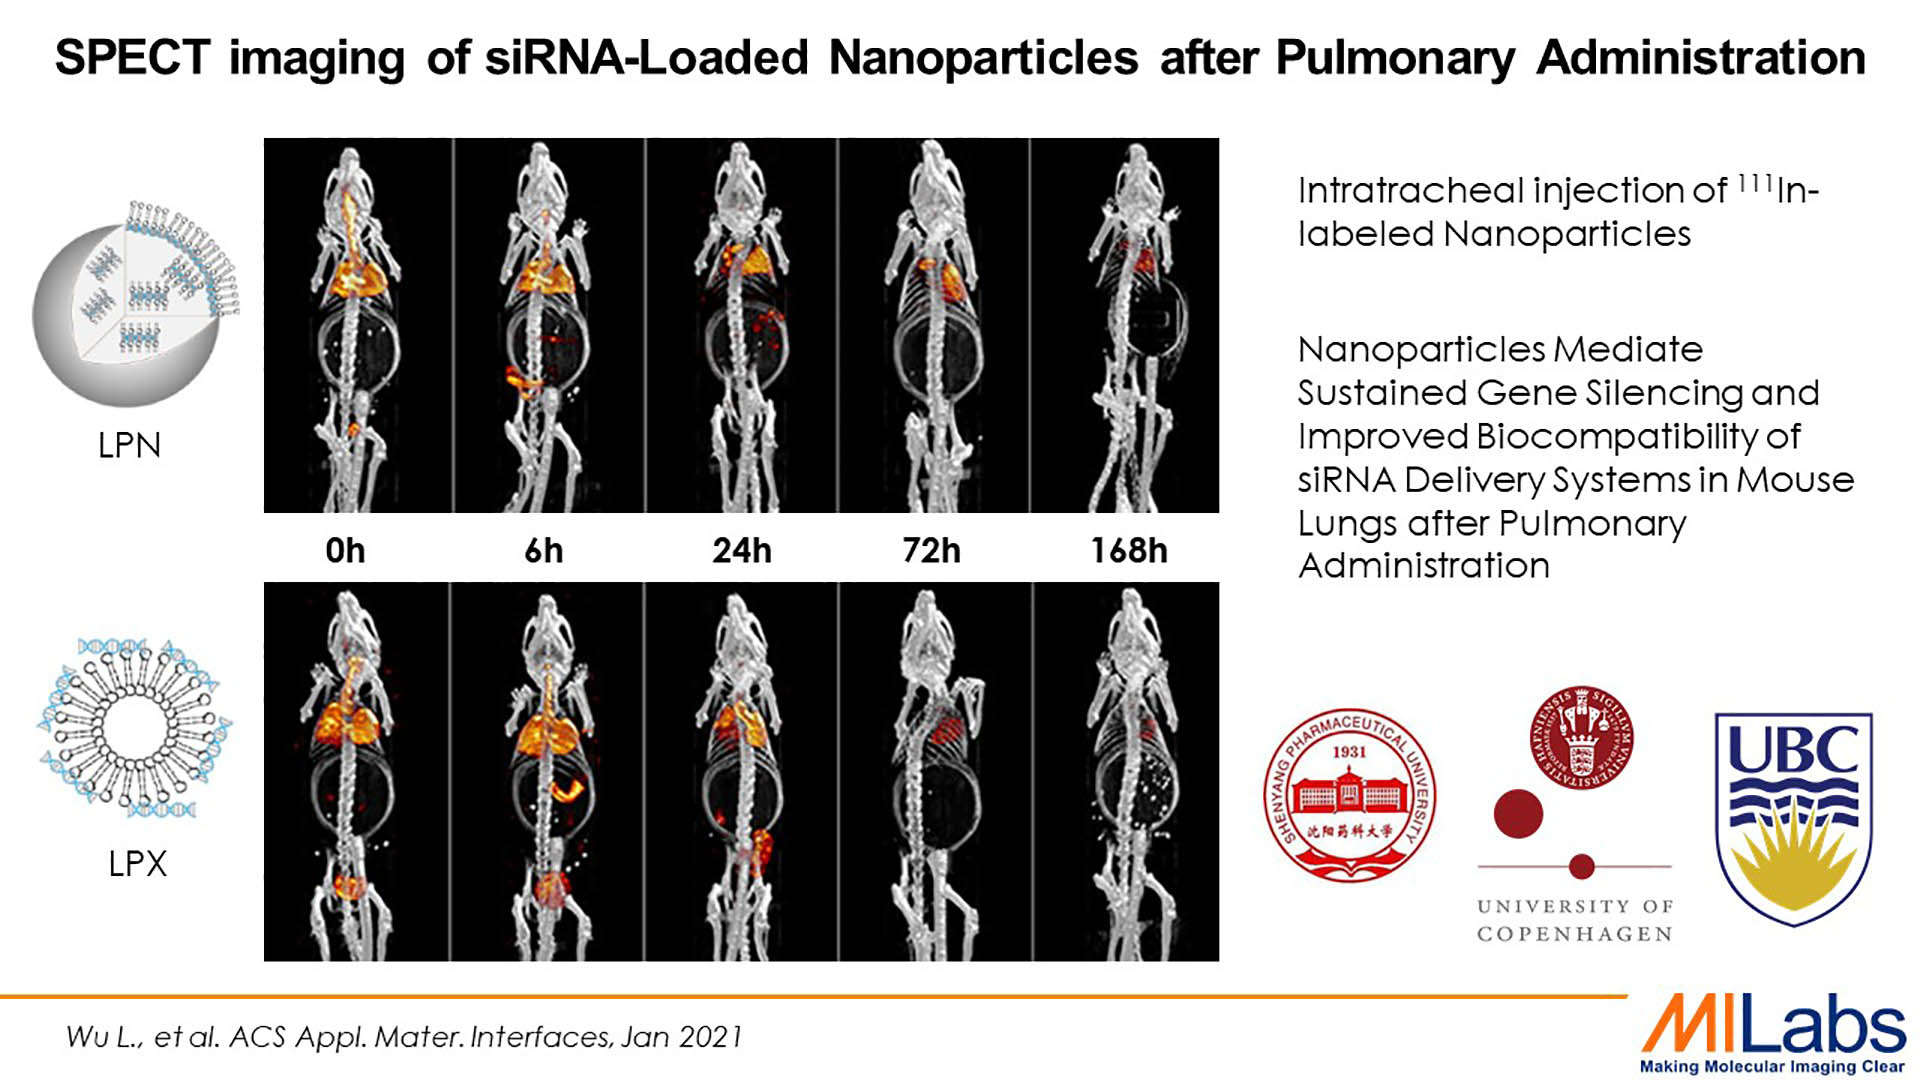 micro SPECT imaing of siRNA loaded nanoparticles after pulmonary administration